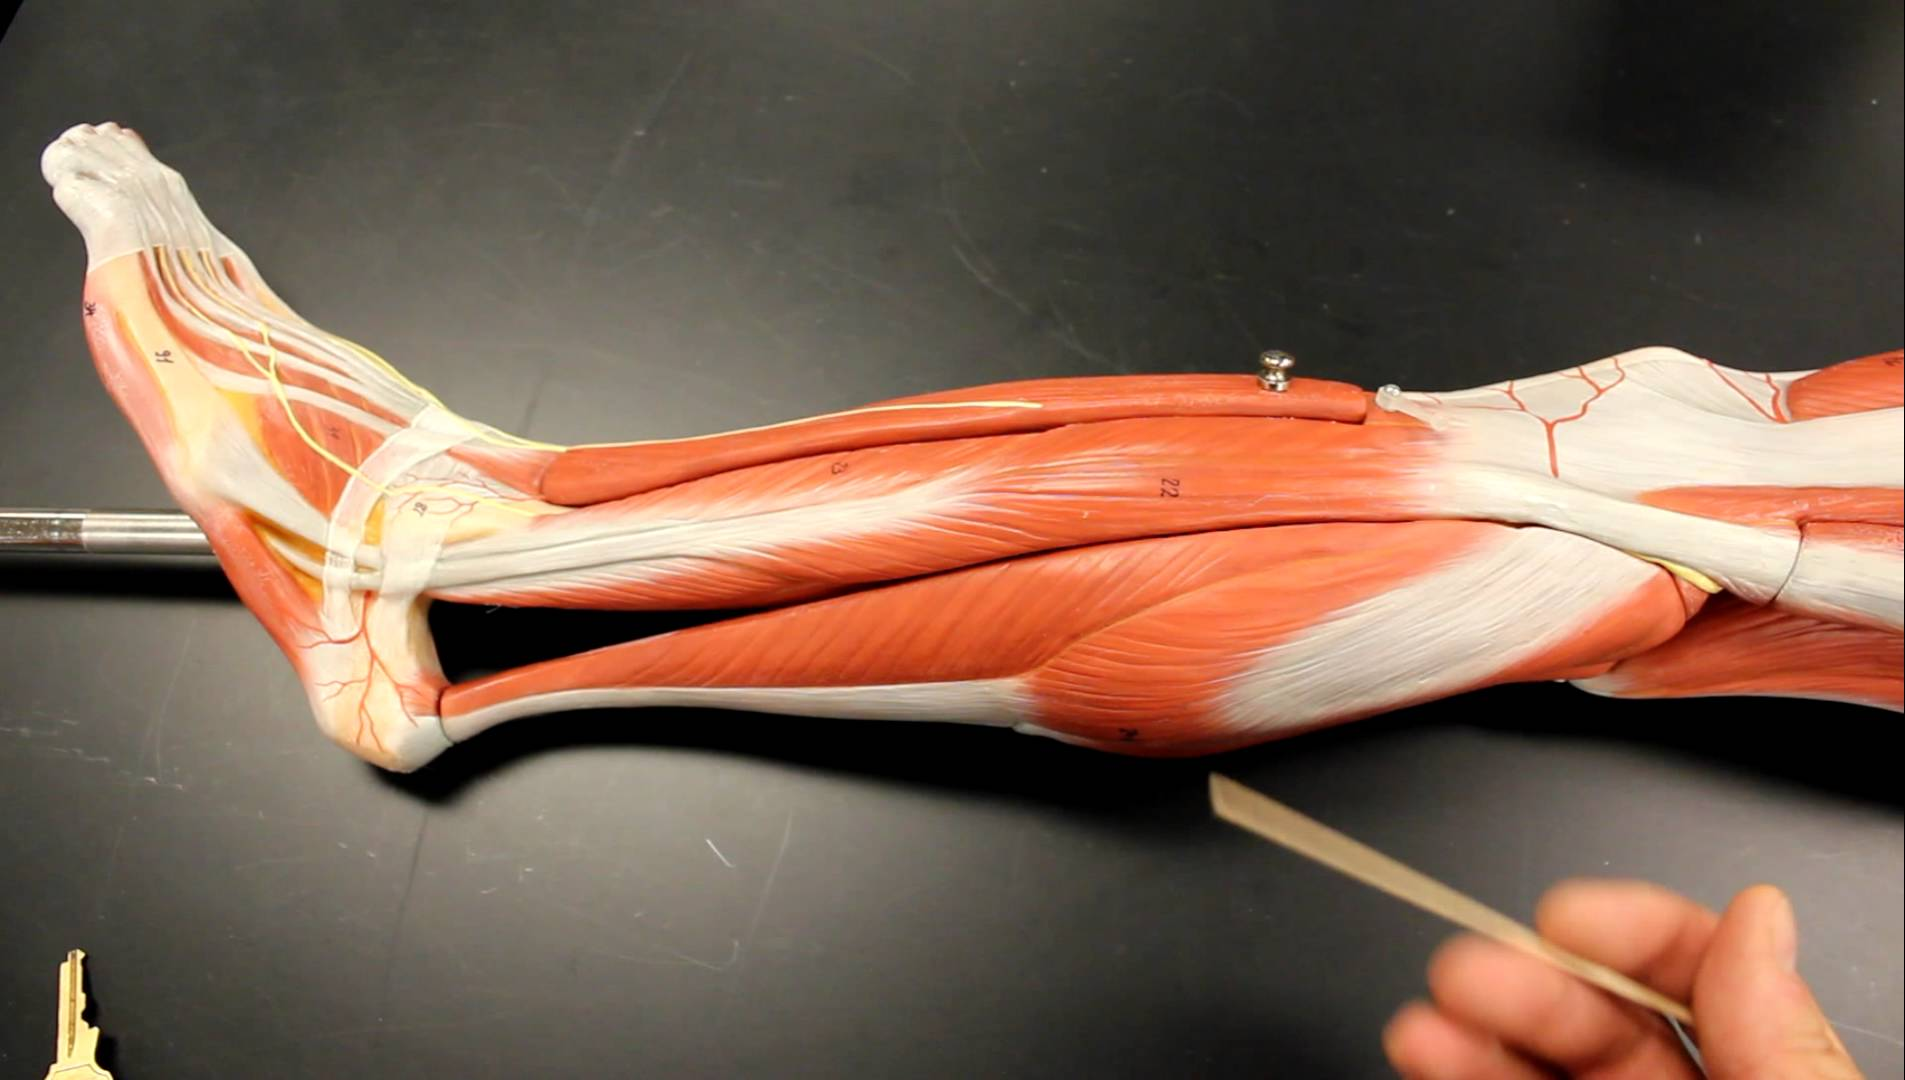 Leg - Lateral Compartment